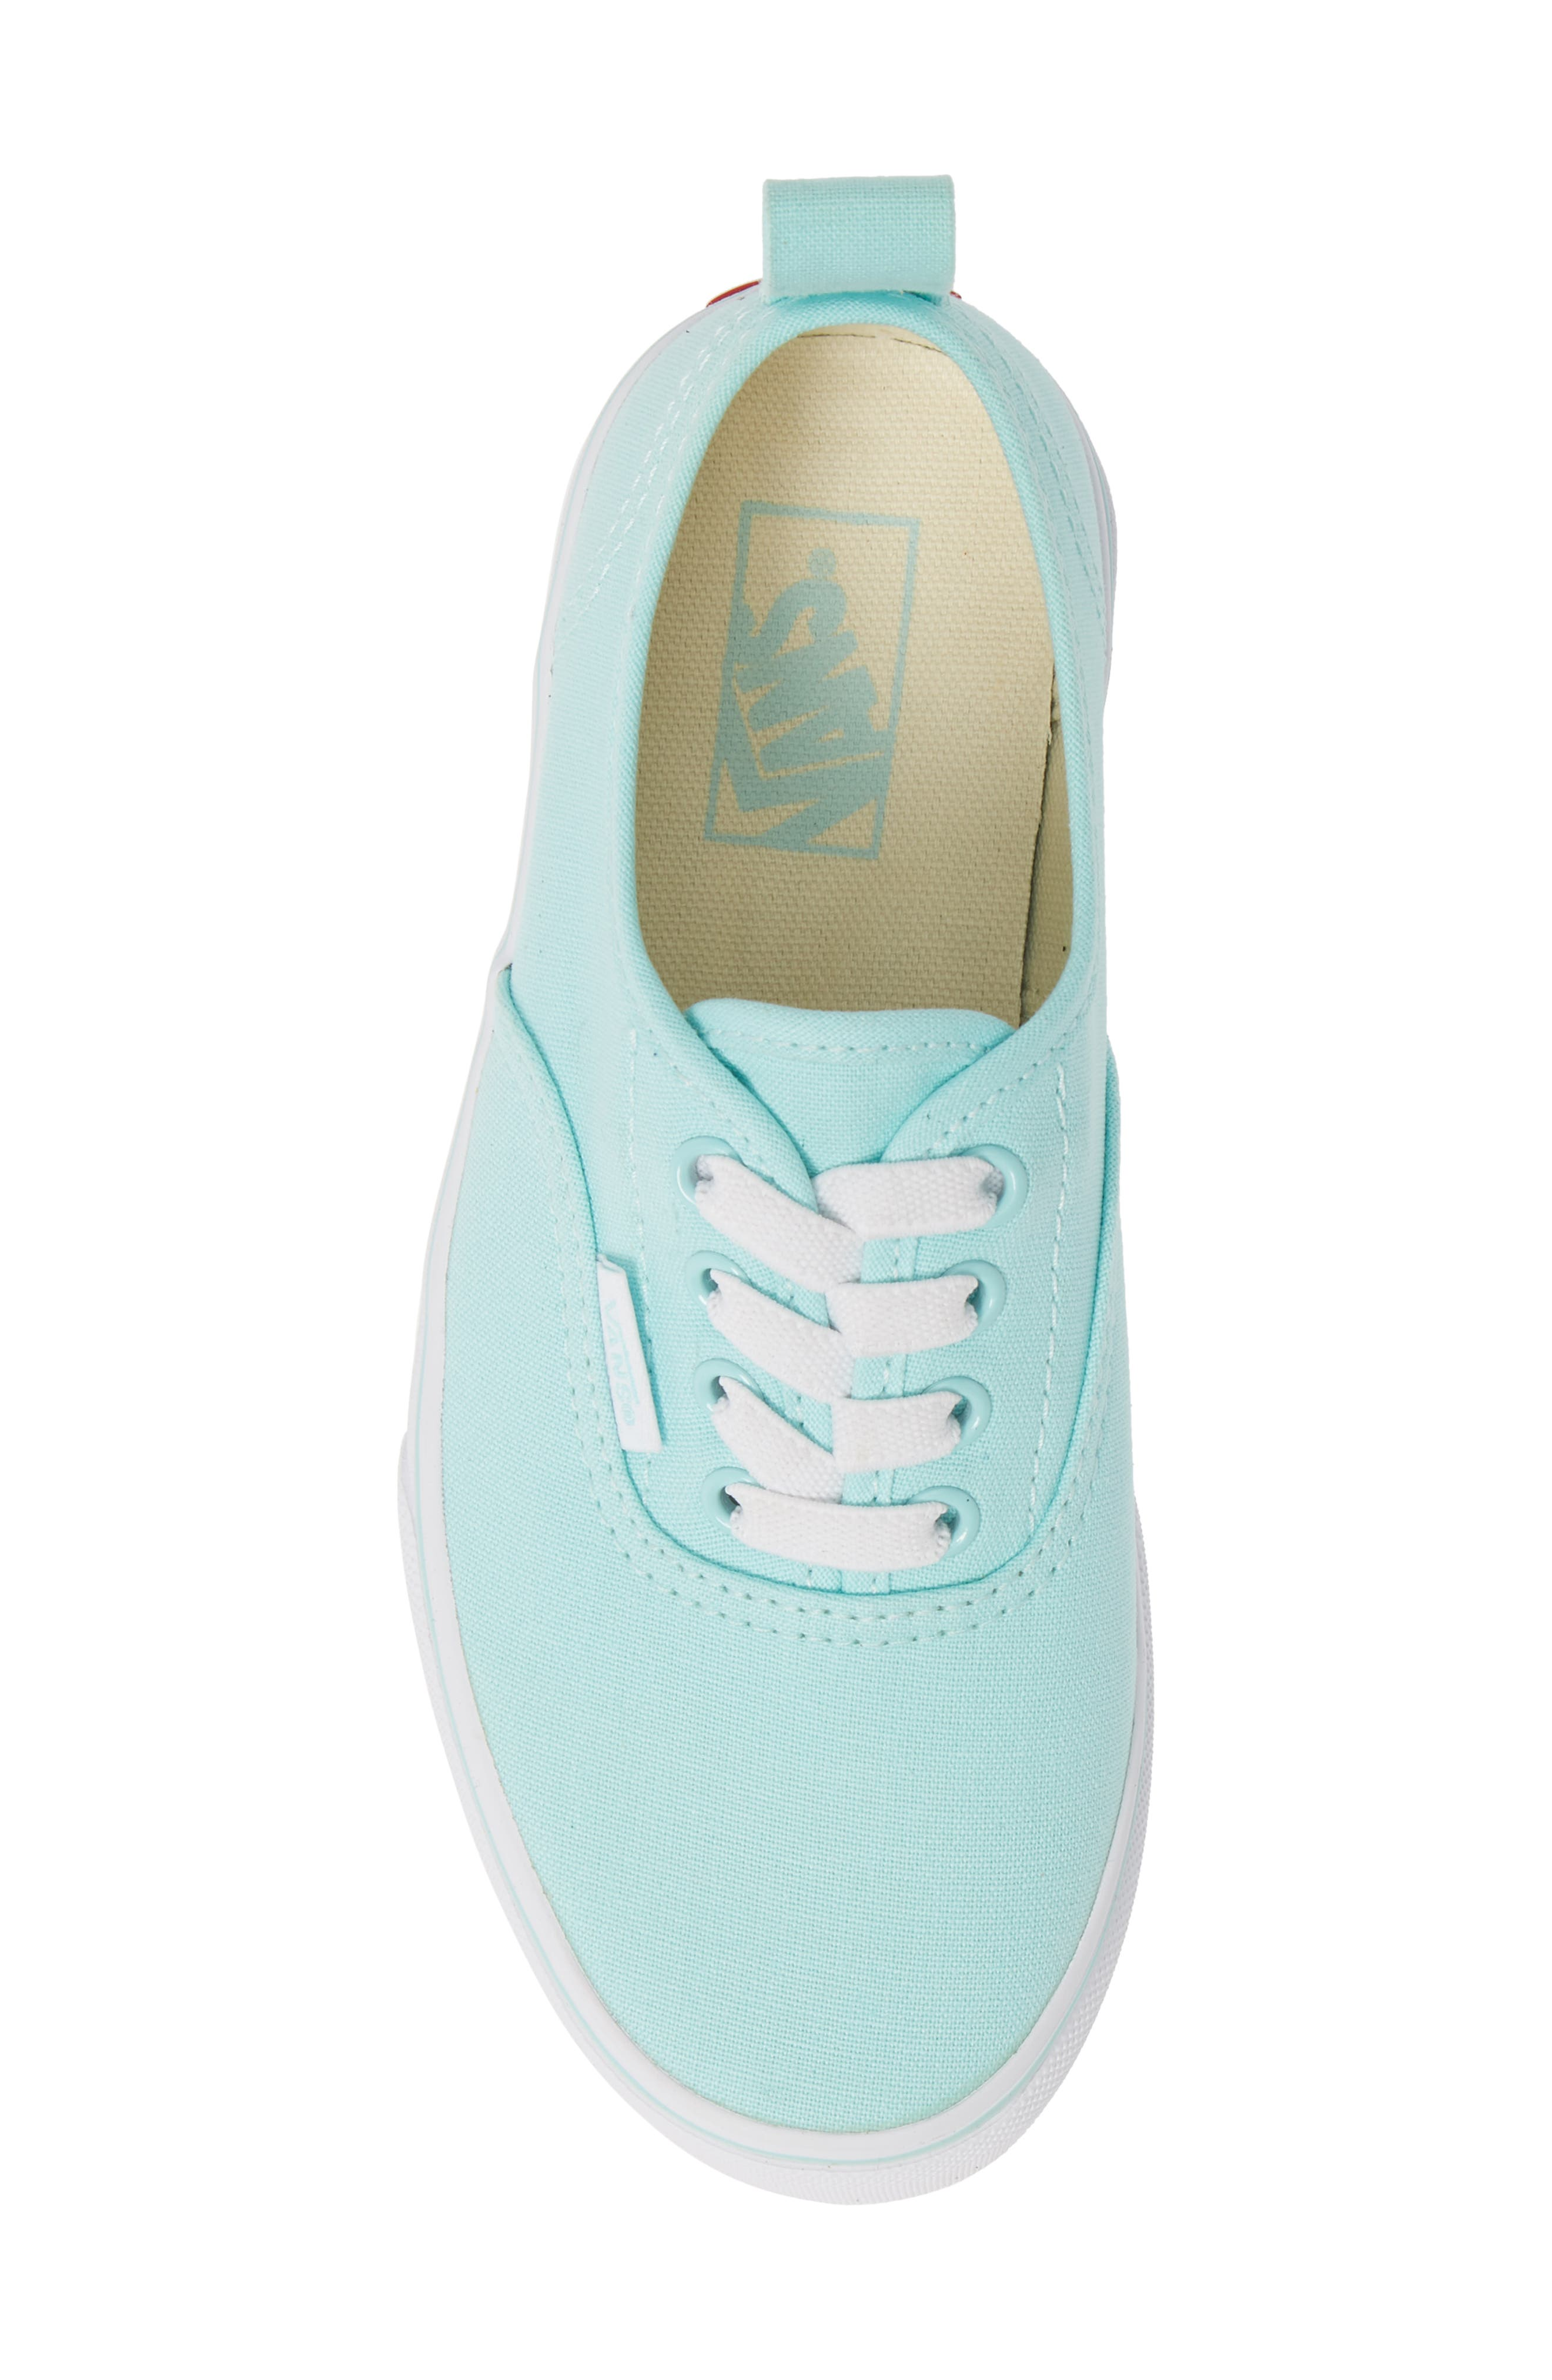 VANS, Authentic Sneaker, Alternate thumbnail 5, color, BLUE TINT/ TRUE WHITE